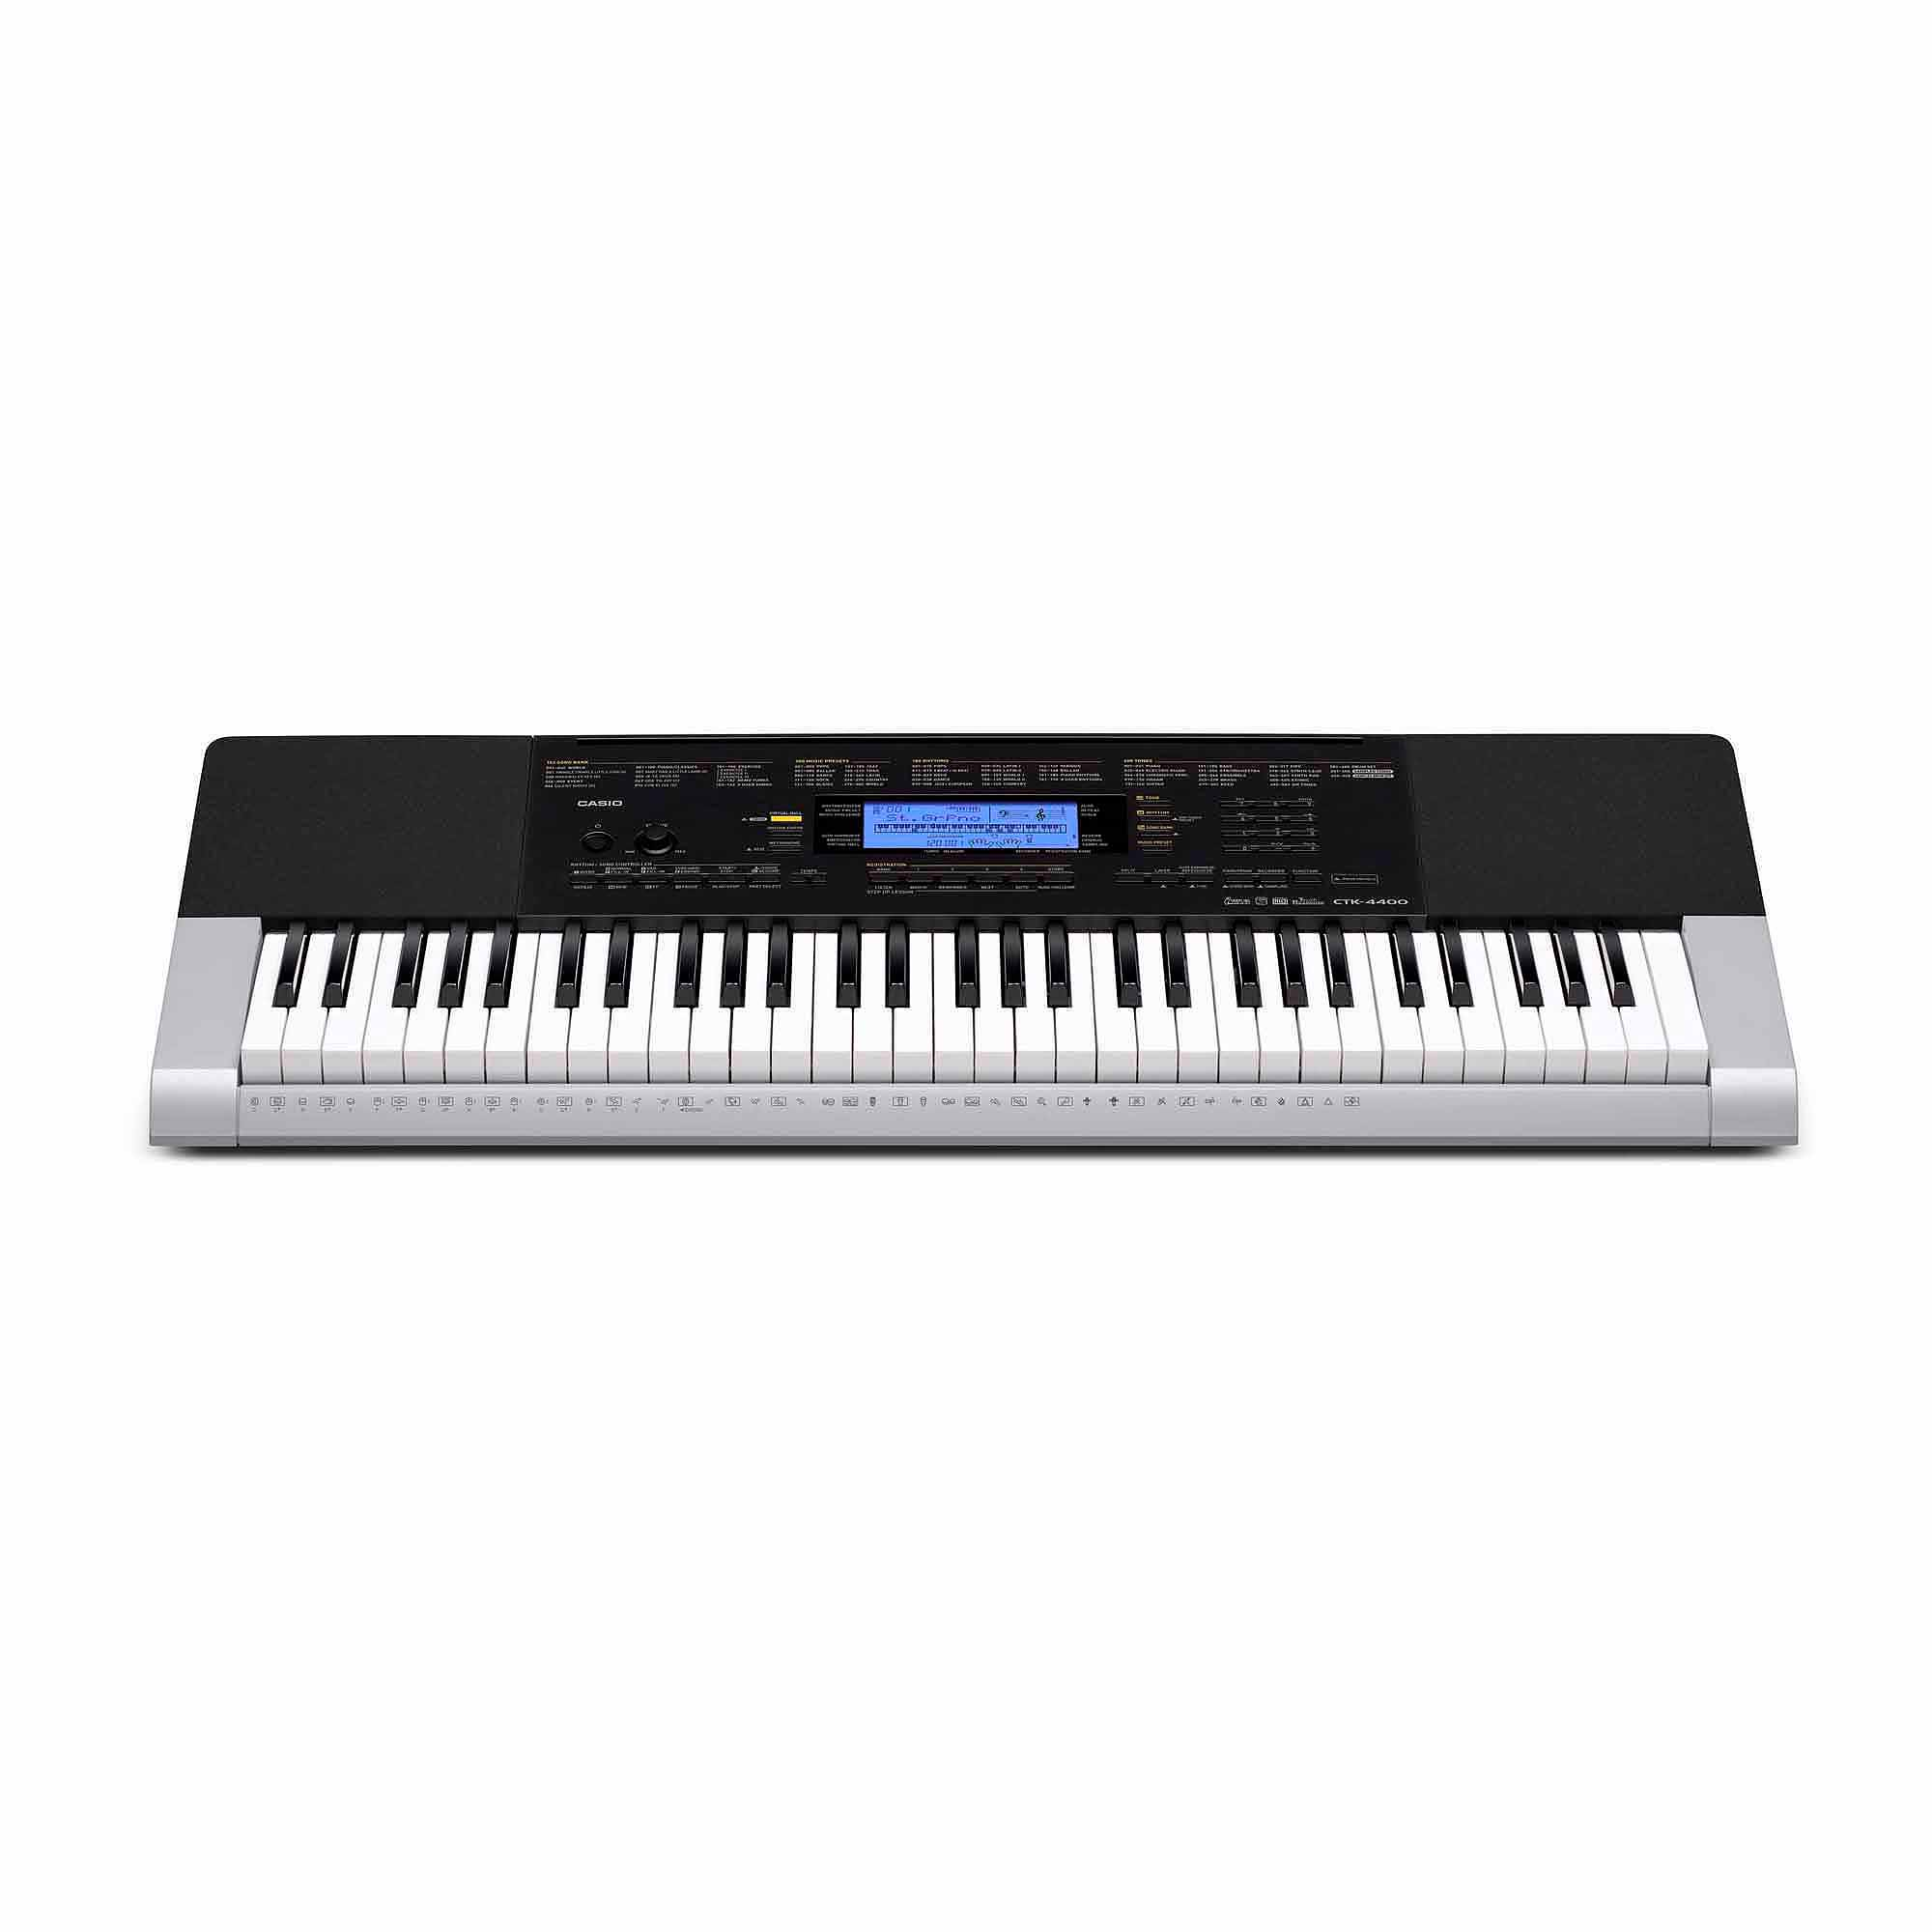 Casio 61 Note Keyboard With Backlit Lcd Screen